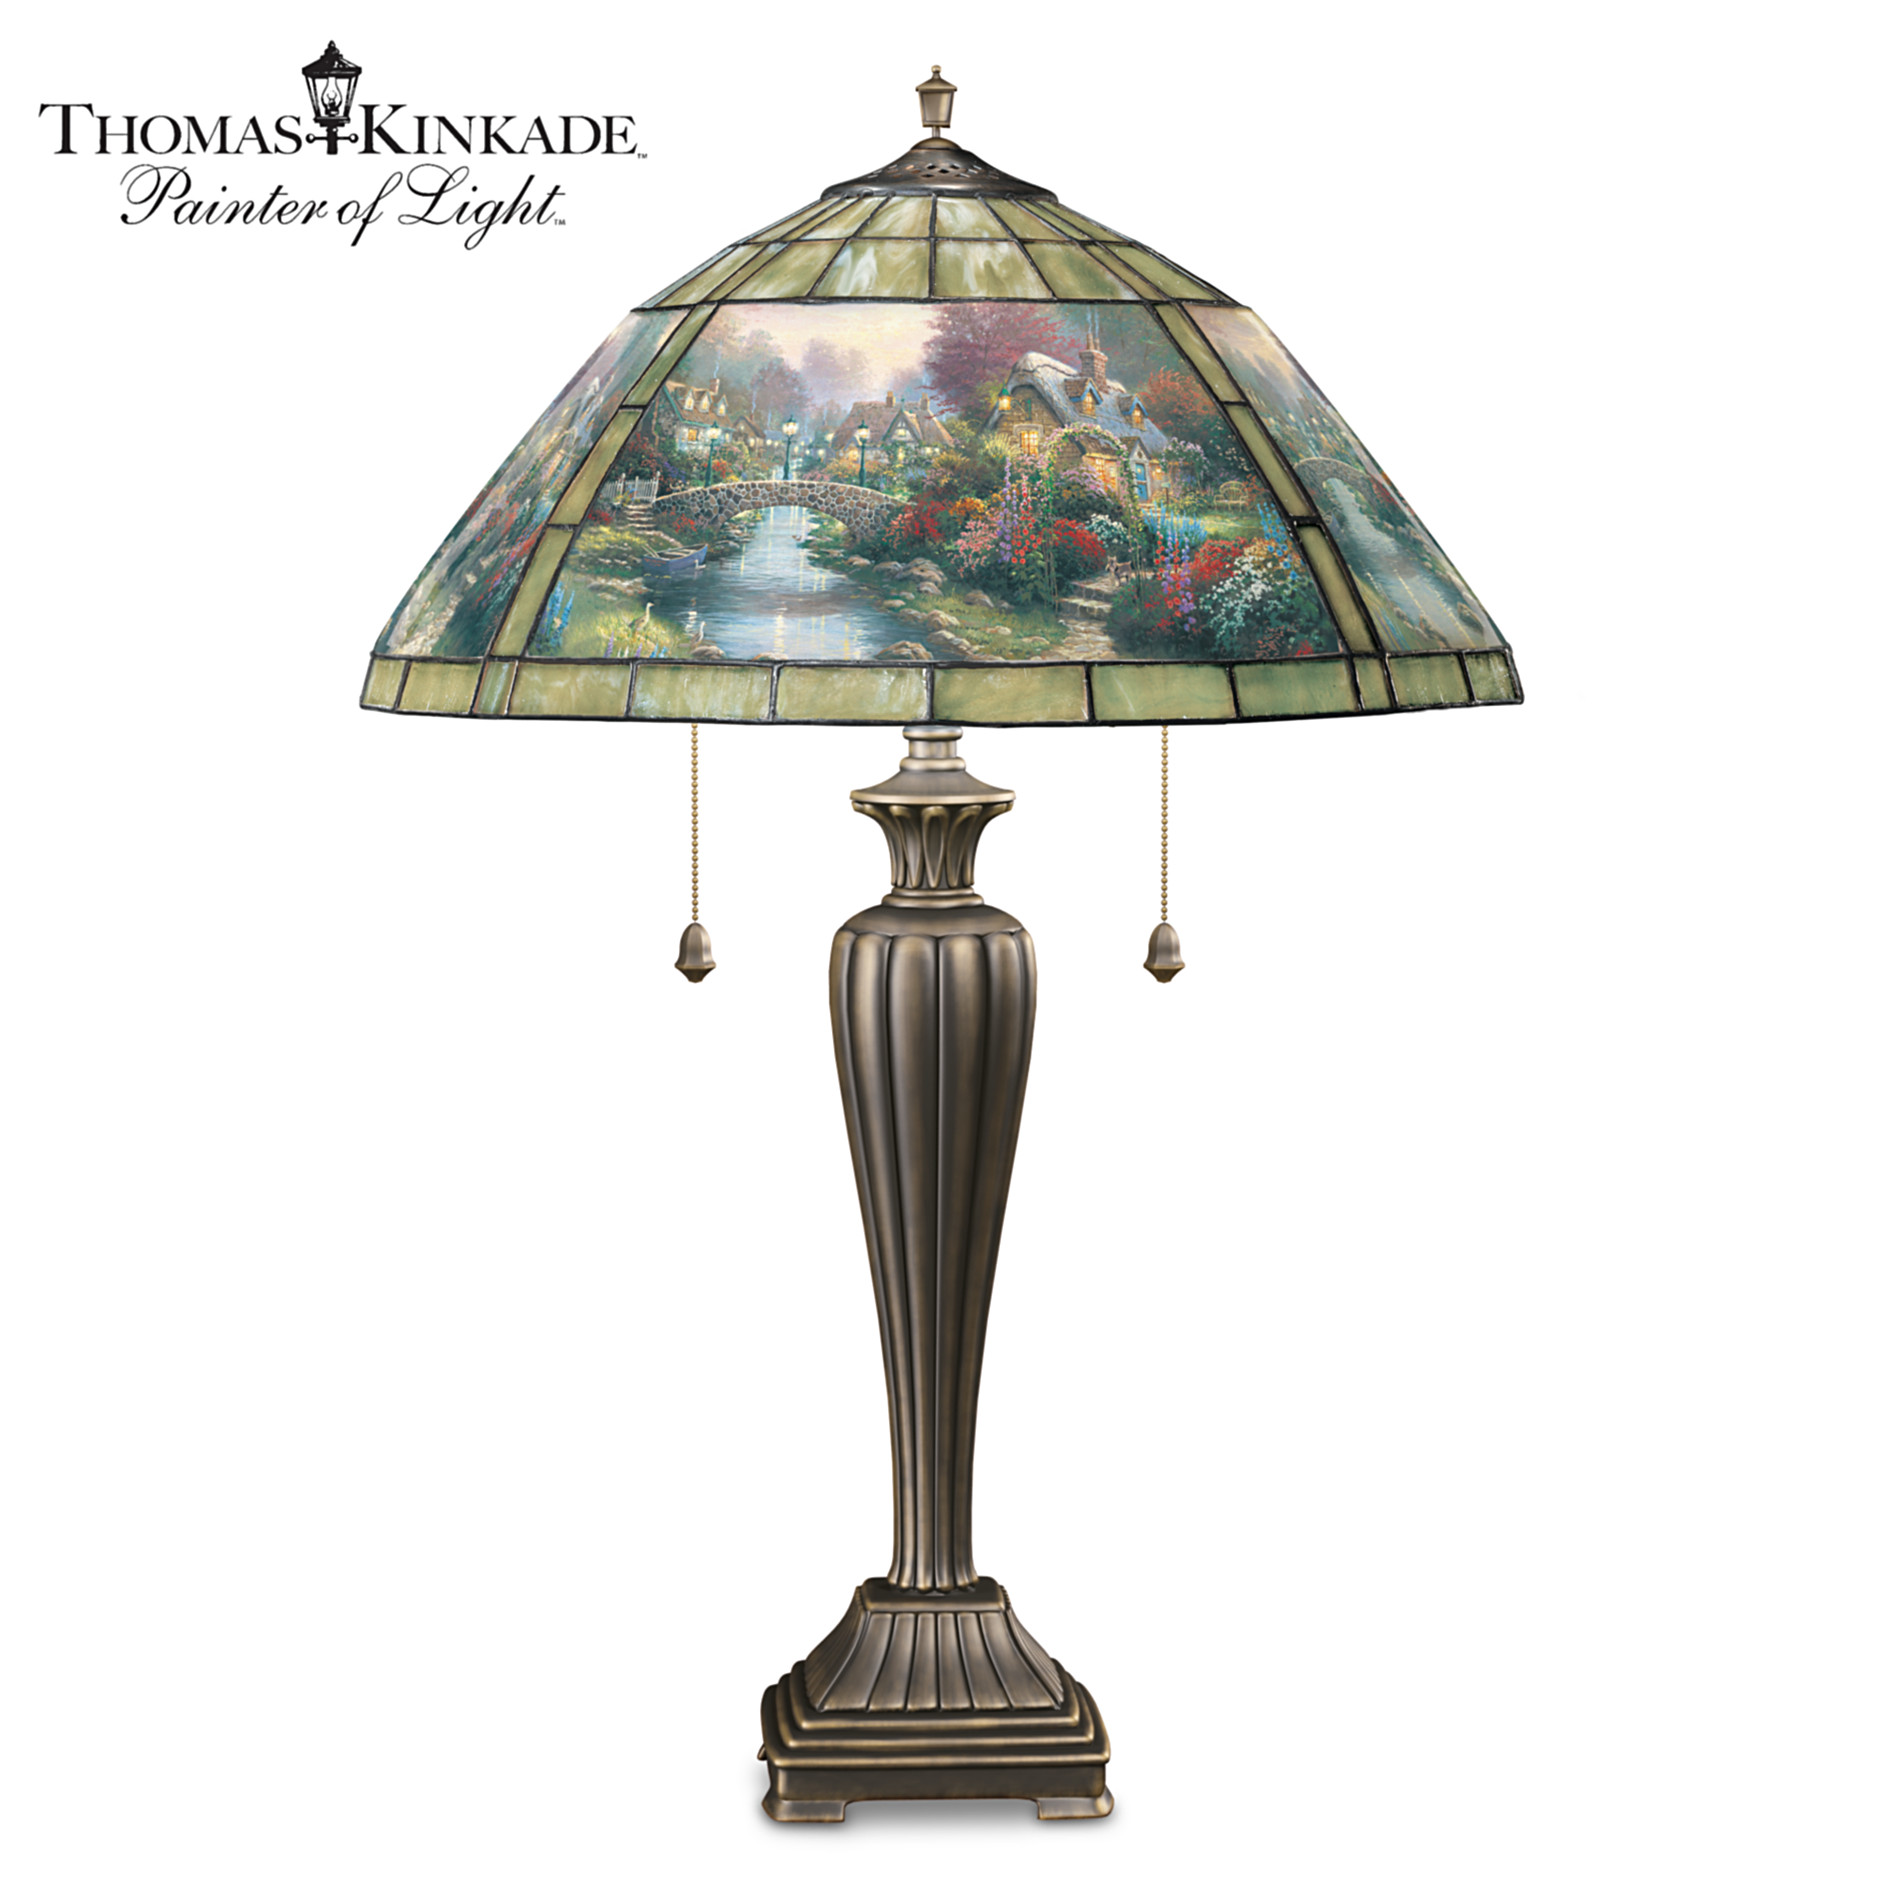 The Bradford Exchange Thomas Kinkade Lamplight Bridge Unique Stained Glass Table Lamp at Sears.com